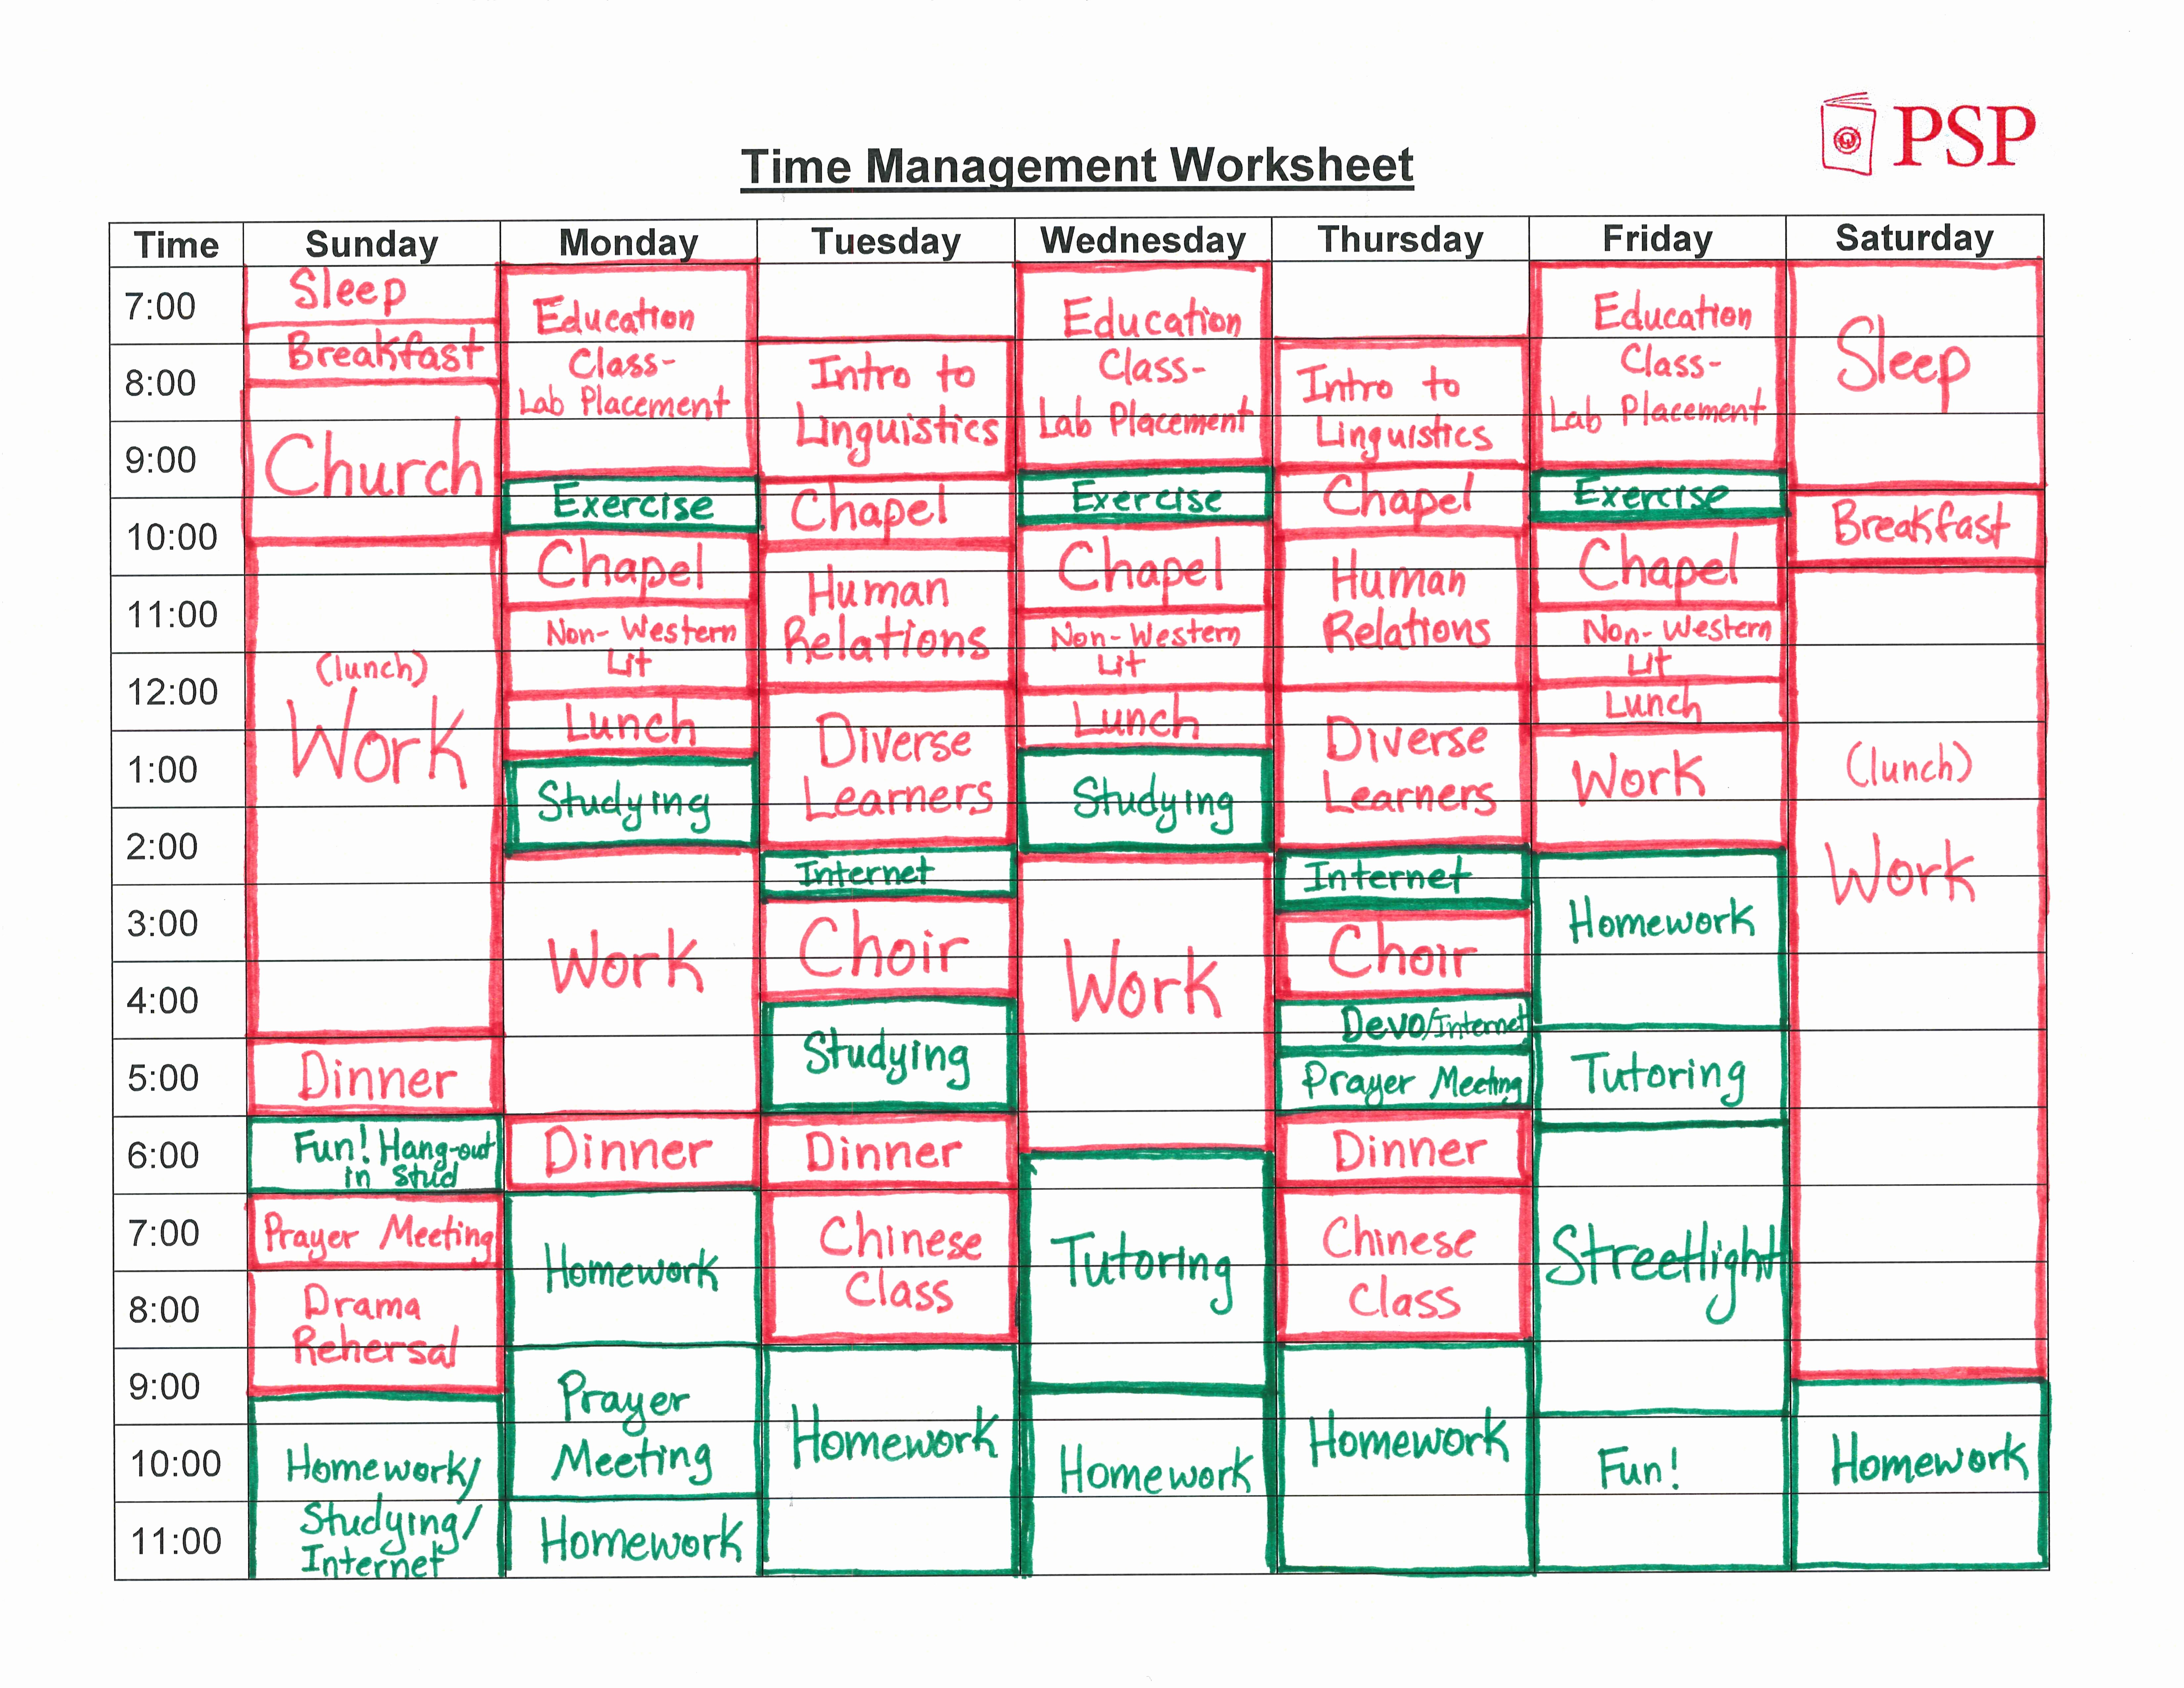 Time Management Plan Template Luxury Time Management